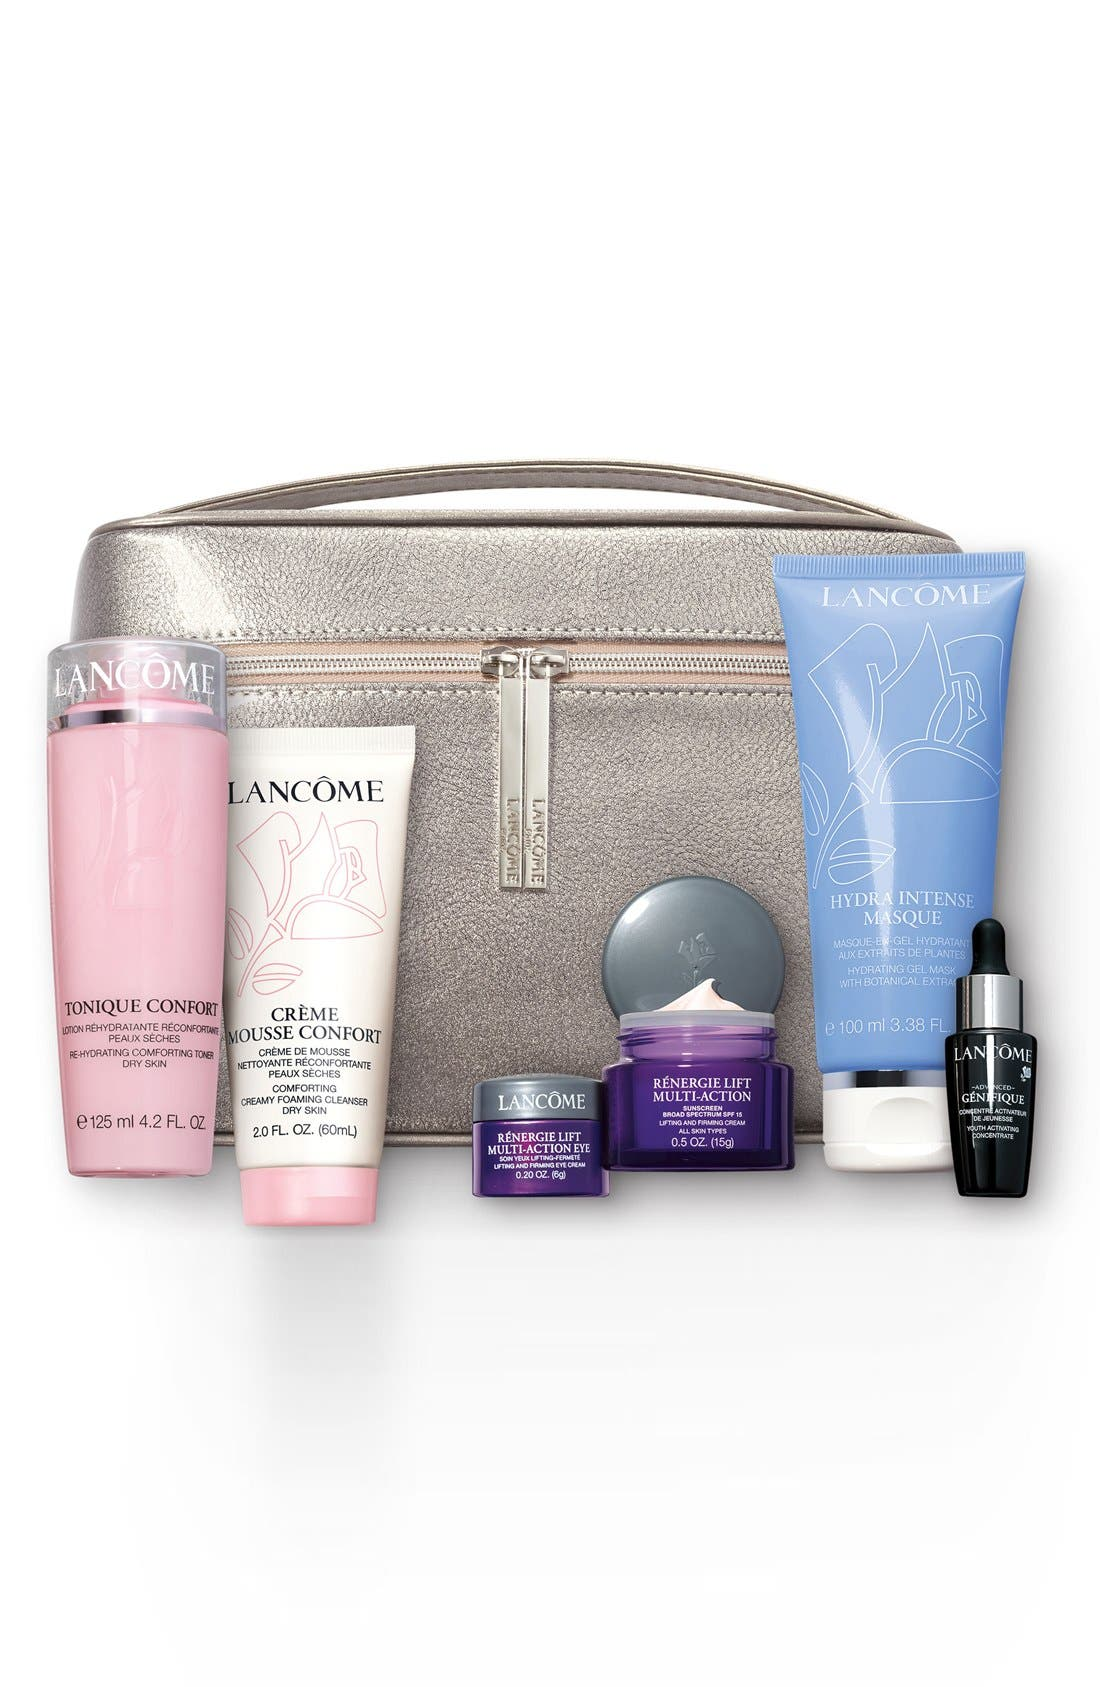 Lancôme Skin Care Essentials Collection (Purchase with any Lancôme Purchase)